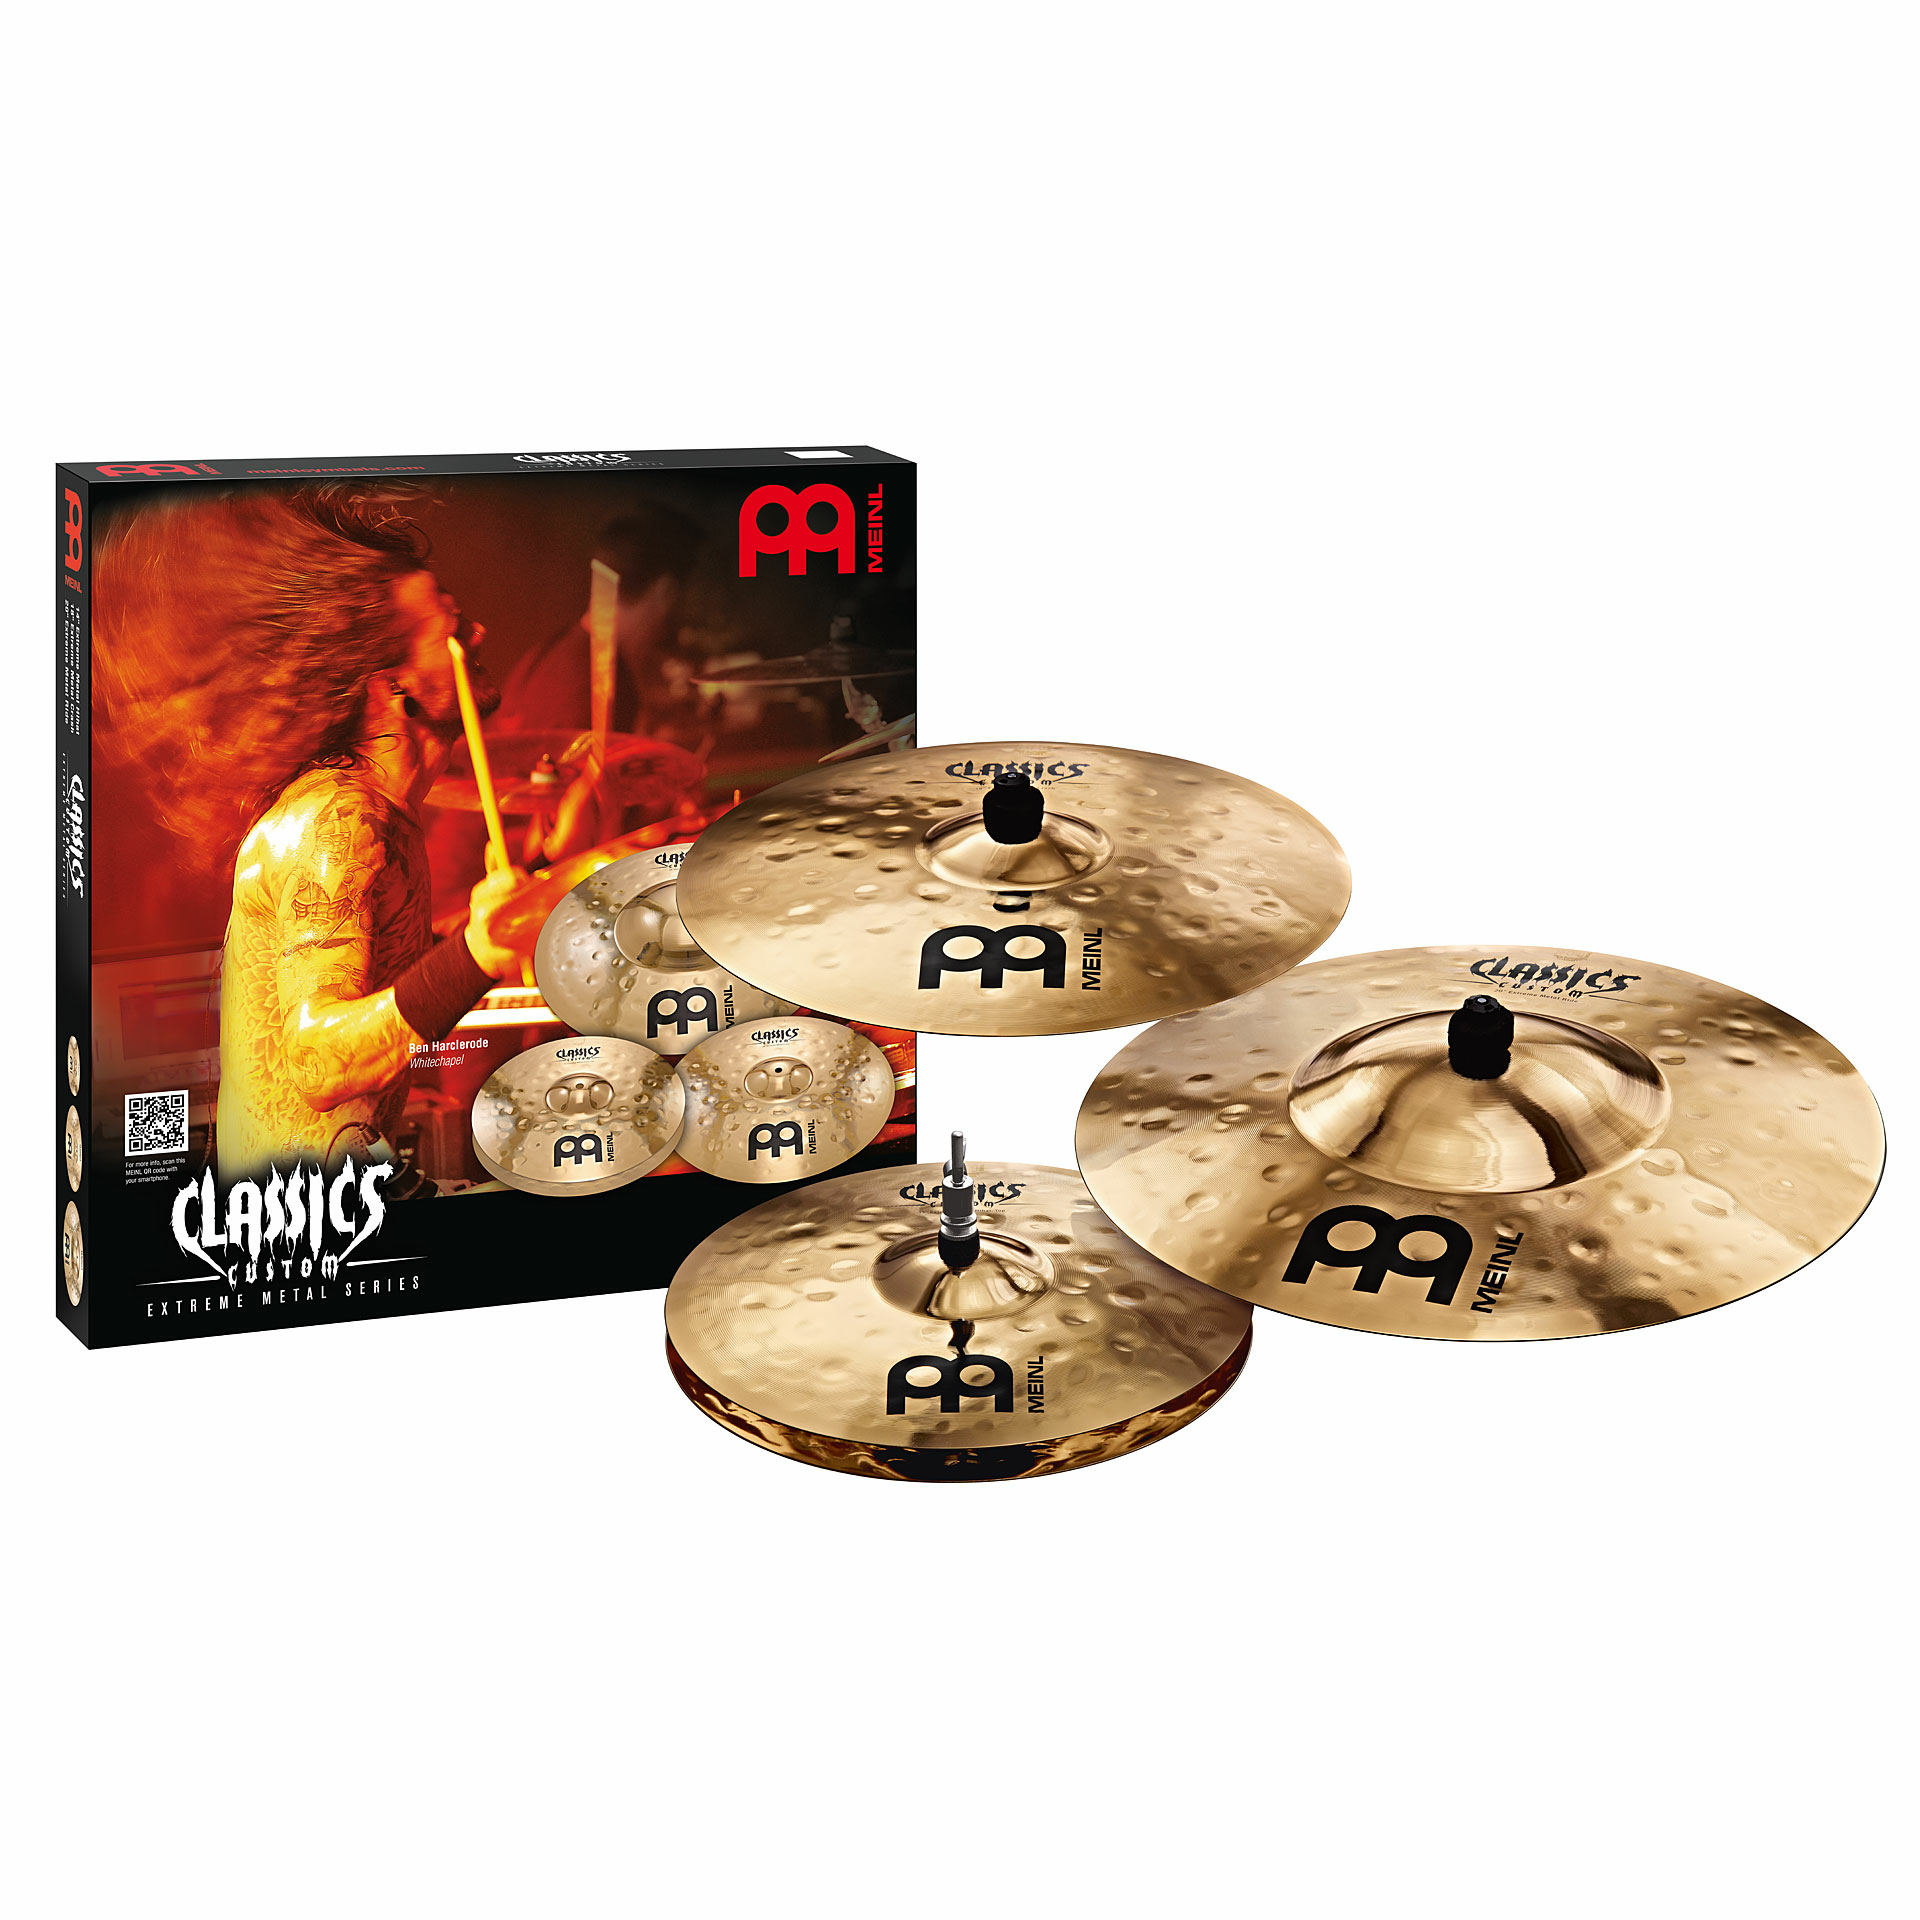 Meinl Classics Custom Extreme Metal 3-Piece Cymbal Box Set (Hi Hats, Crash, Ride)